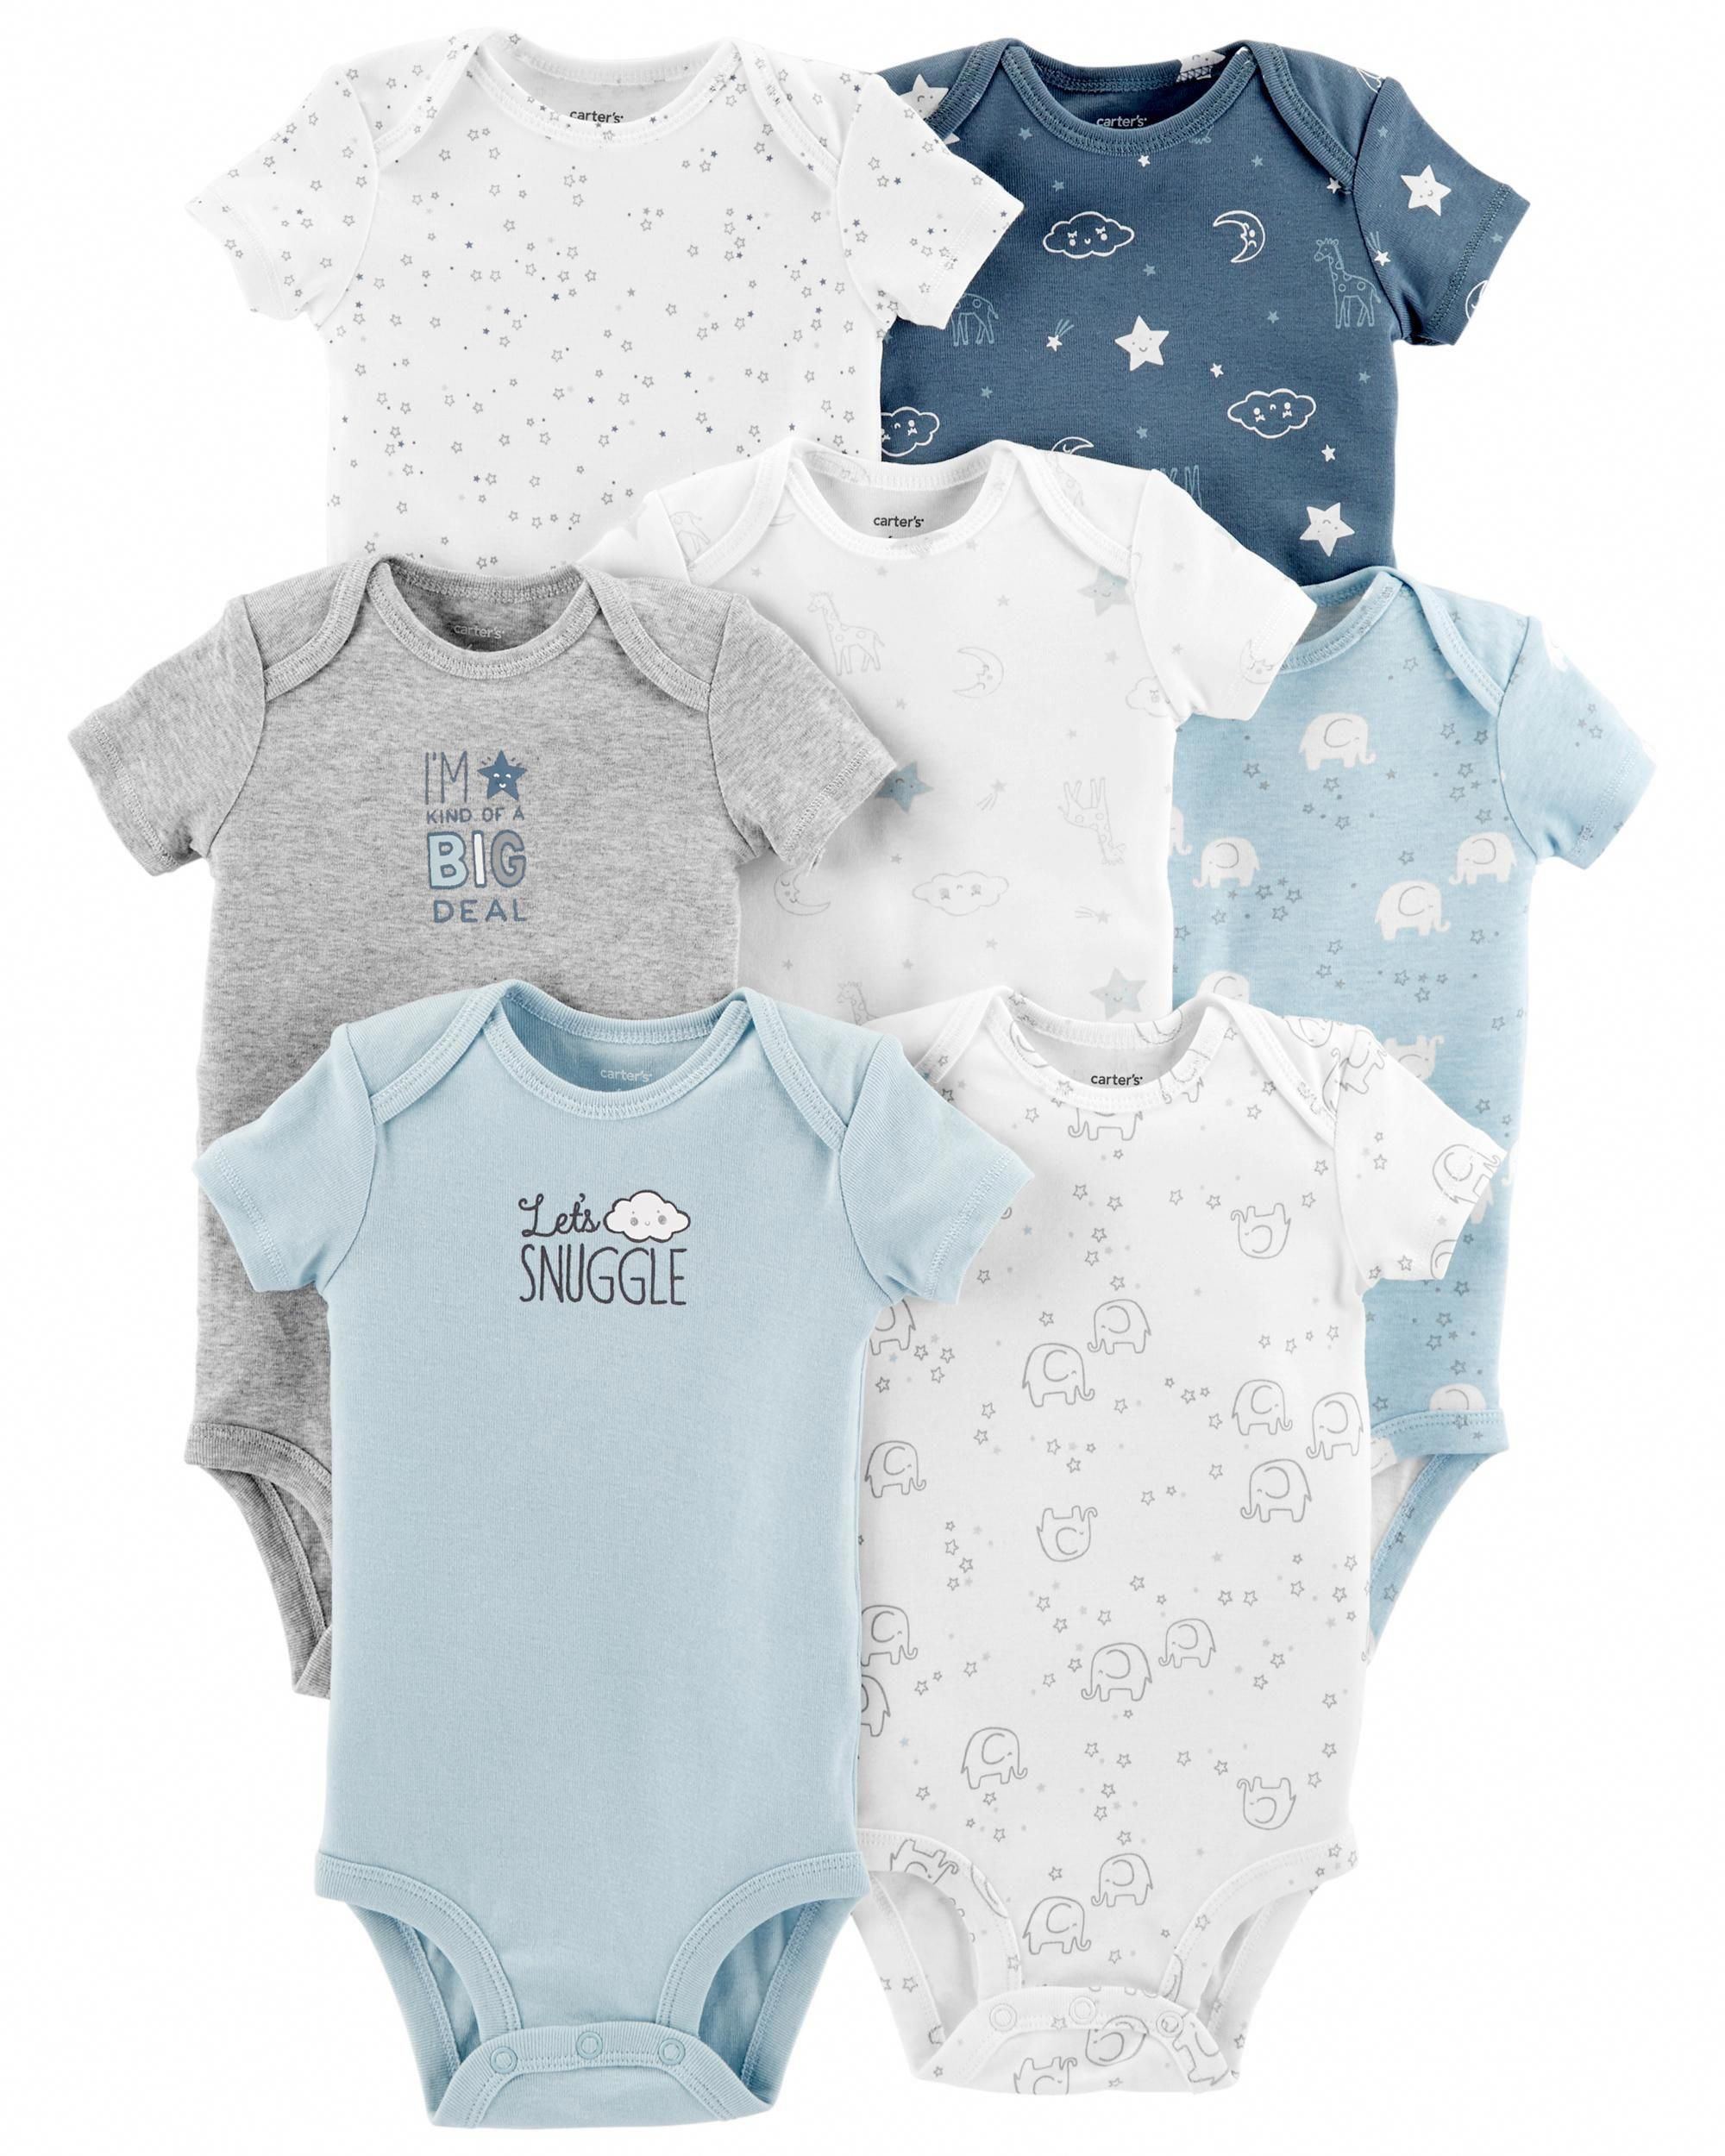 Baby Boys Girls Short-Sleeve Polo-Style Shirt 100/% Cotton Bodysuits for Infant